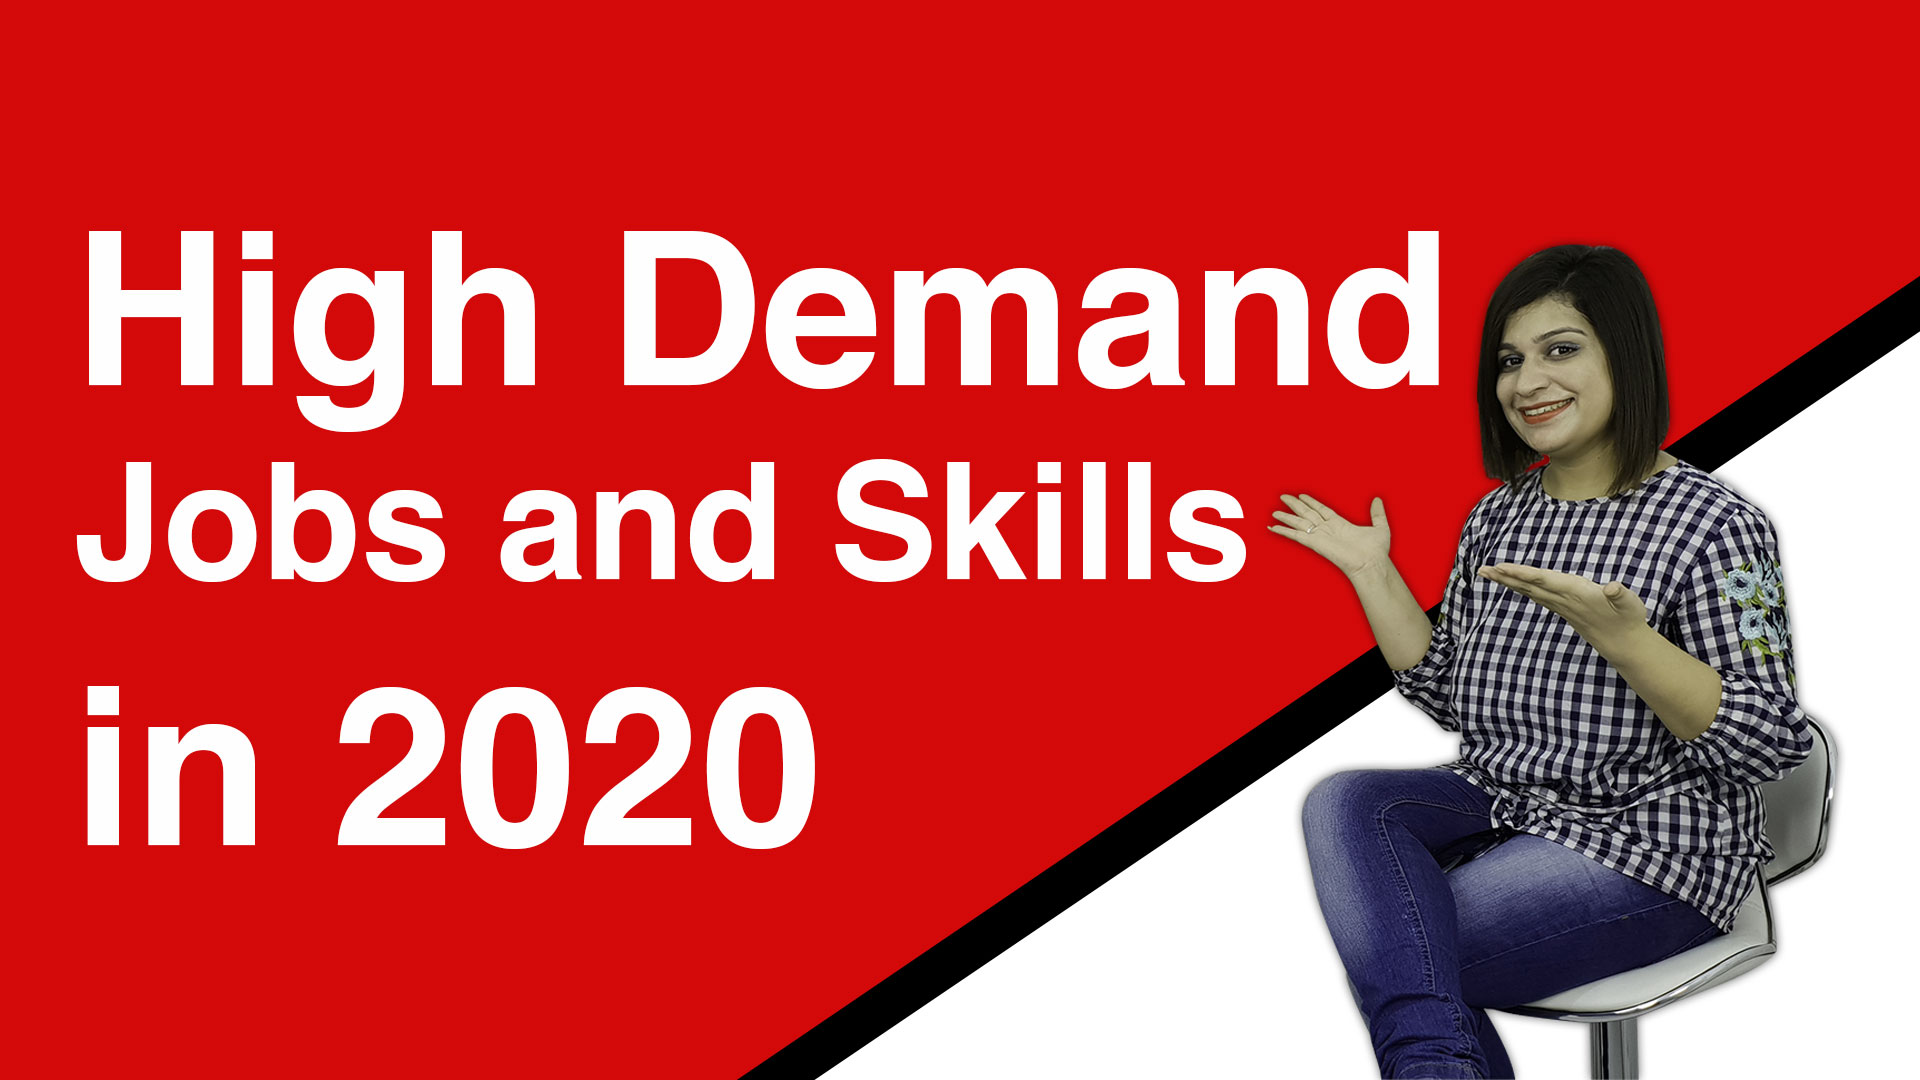 High Demand Jobs and Skills in 2020